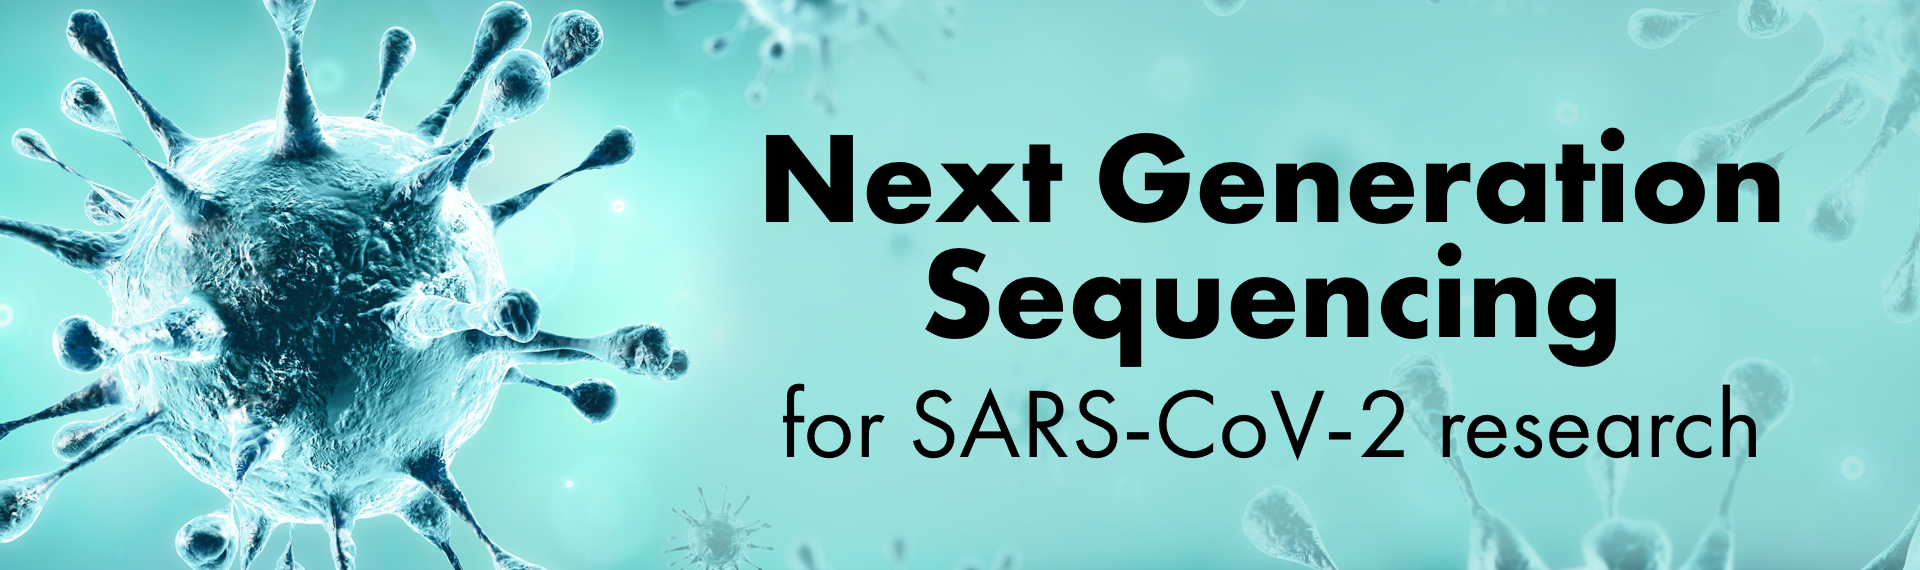 Next Generation Sequencing for SARS-Cov-2 research